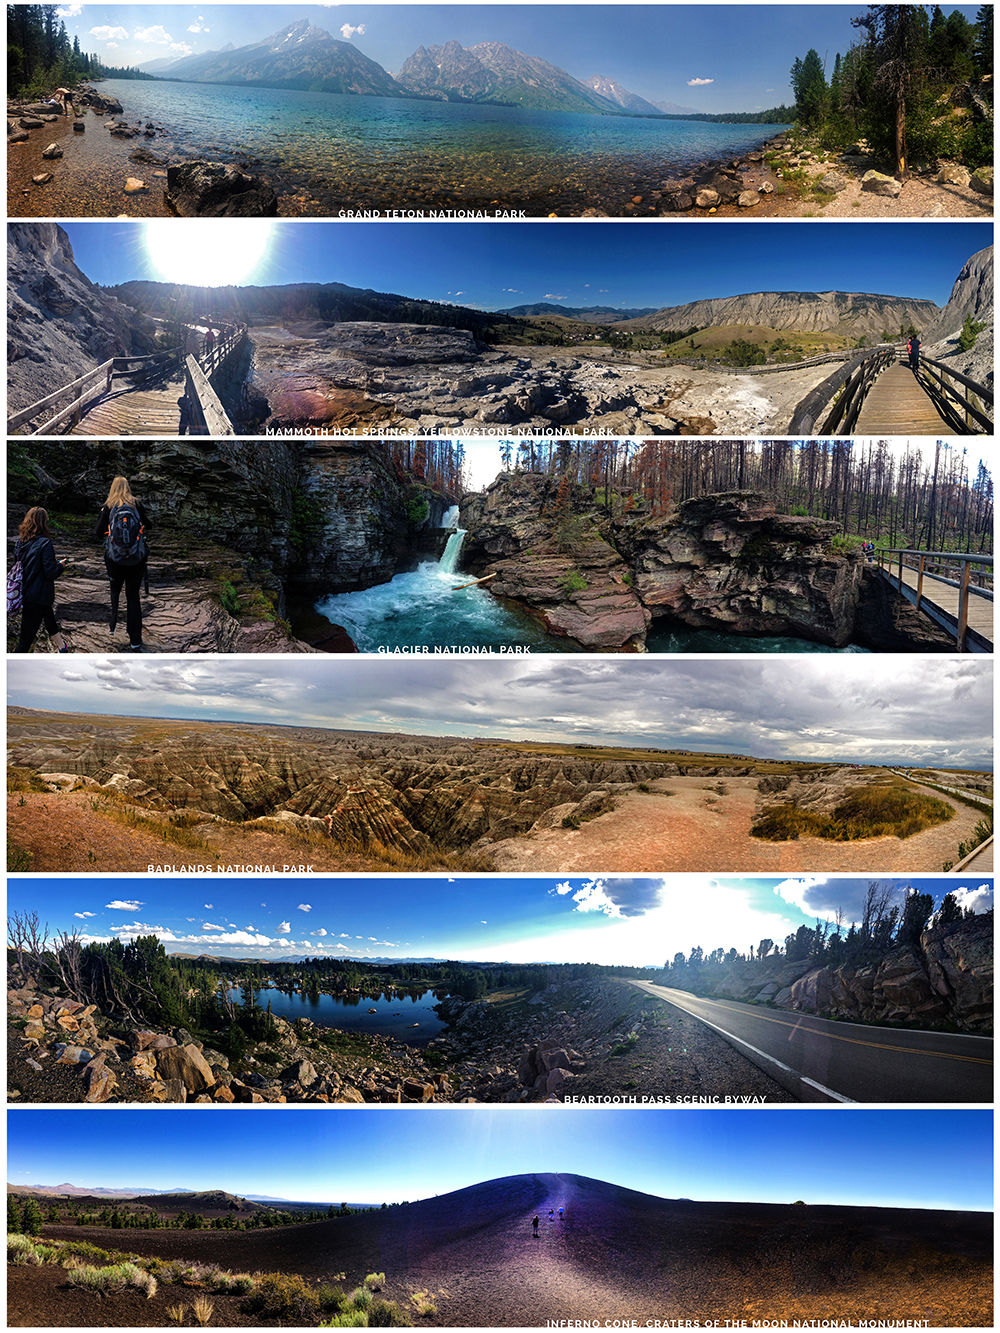 American Southwest 2016 Panorama Poster_07_02